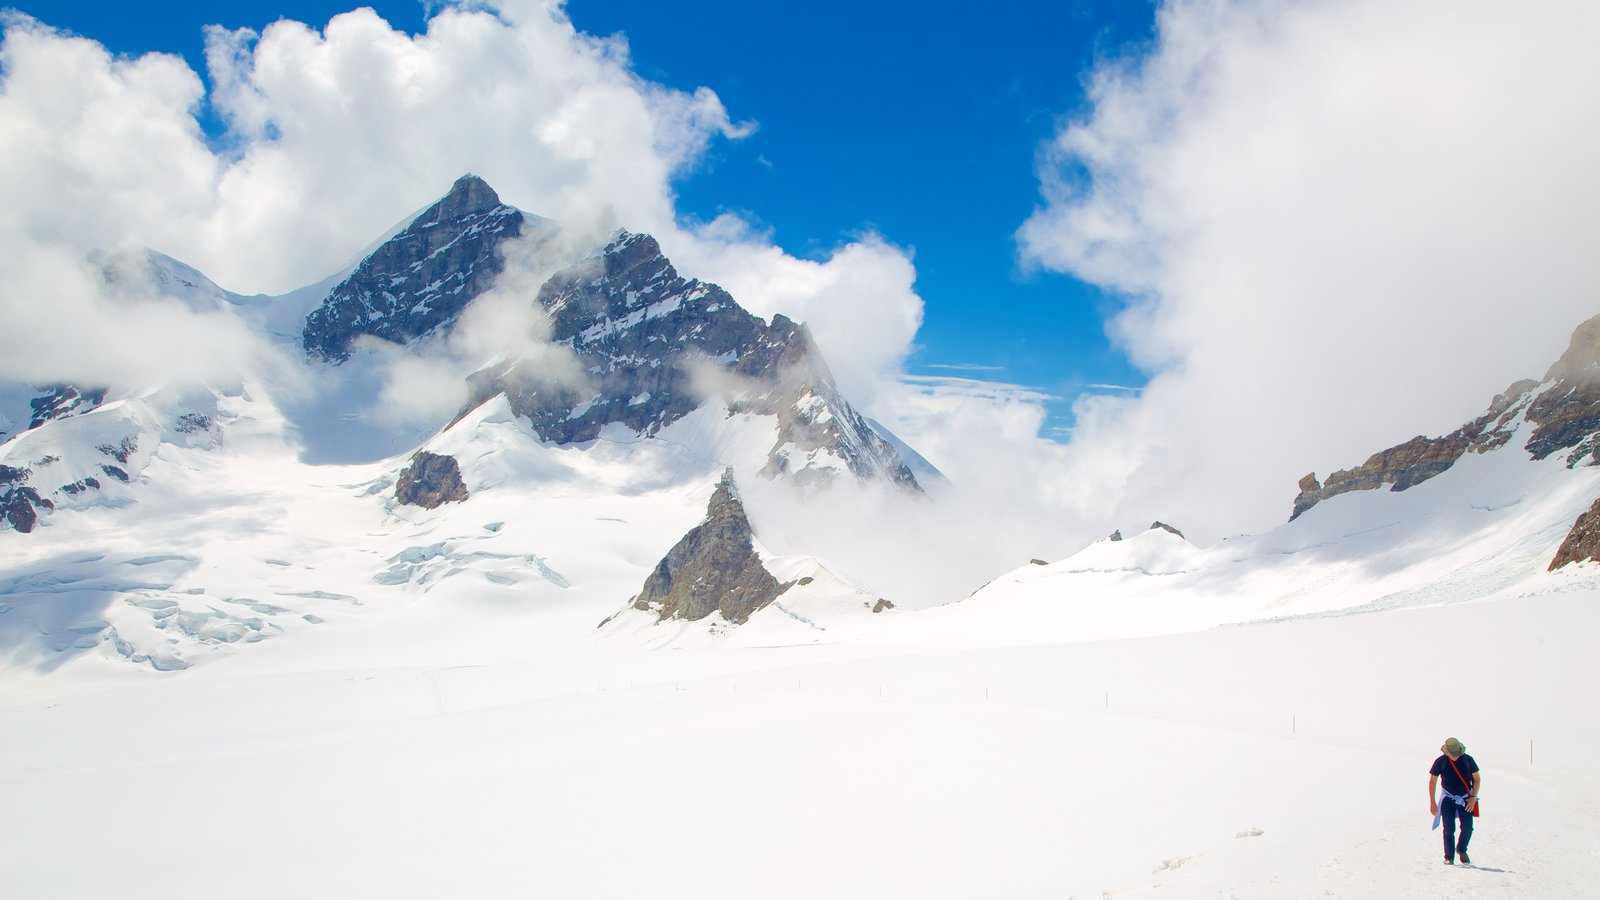 Jungfraujoch featuring snow, mist or fog and hiking or walking